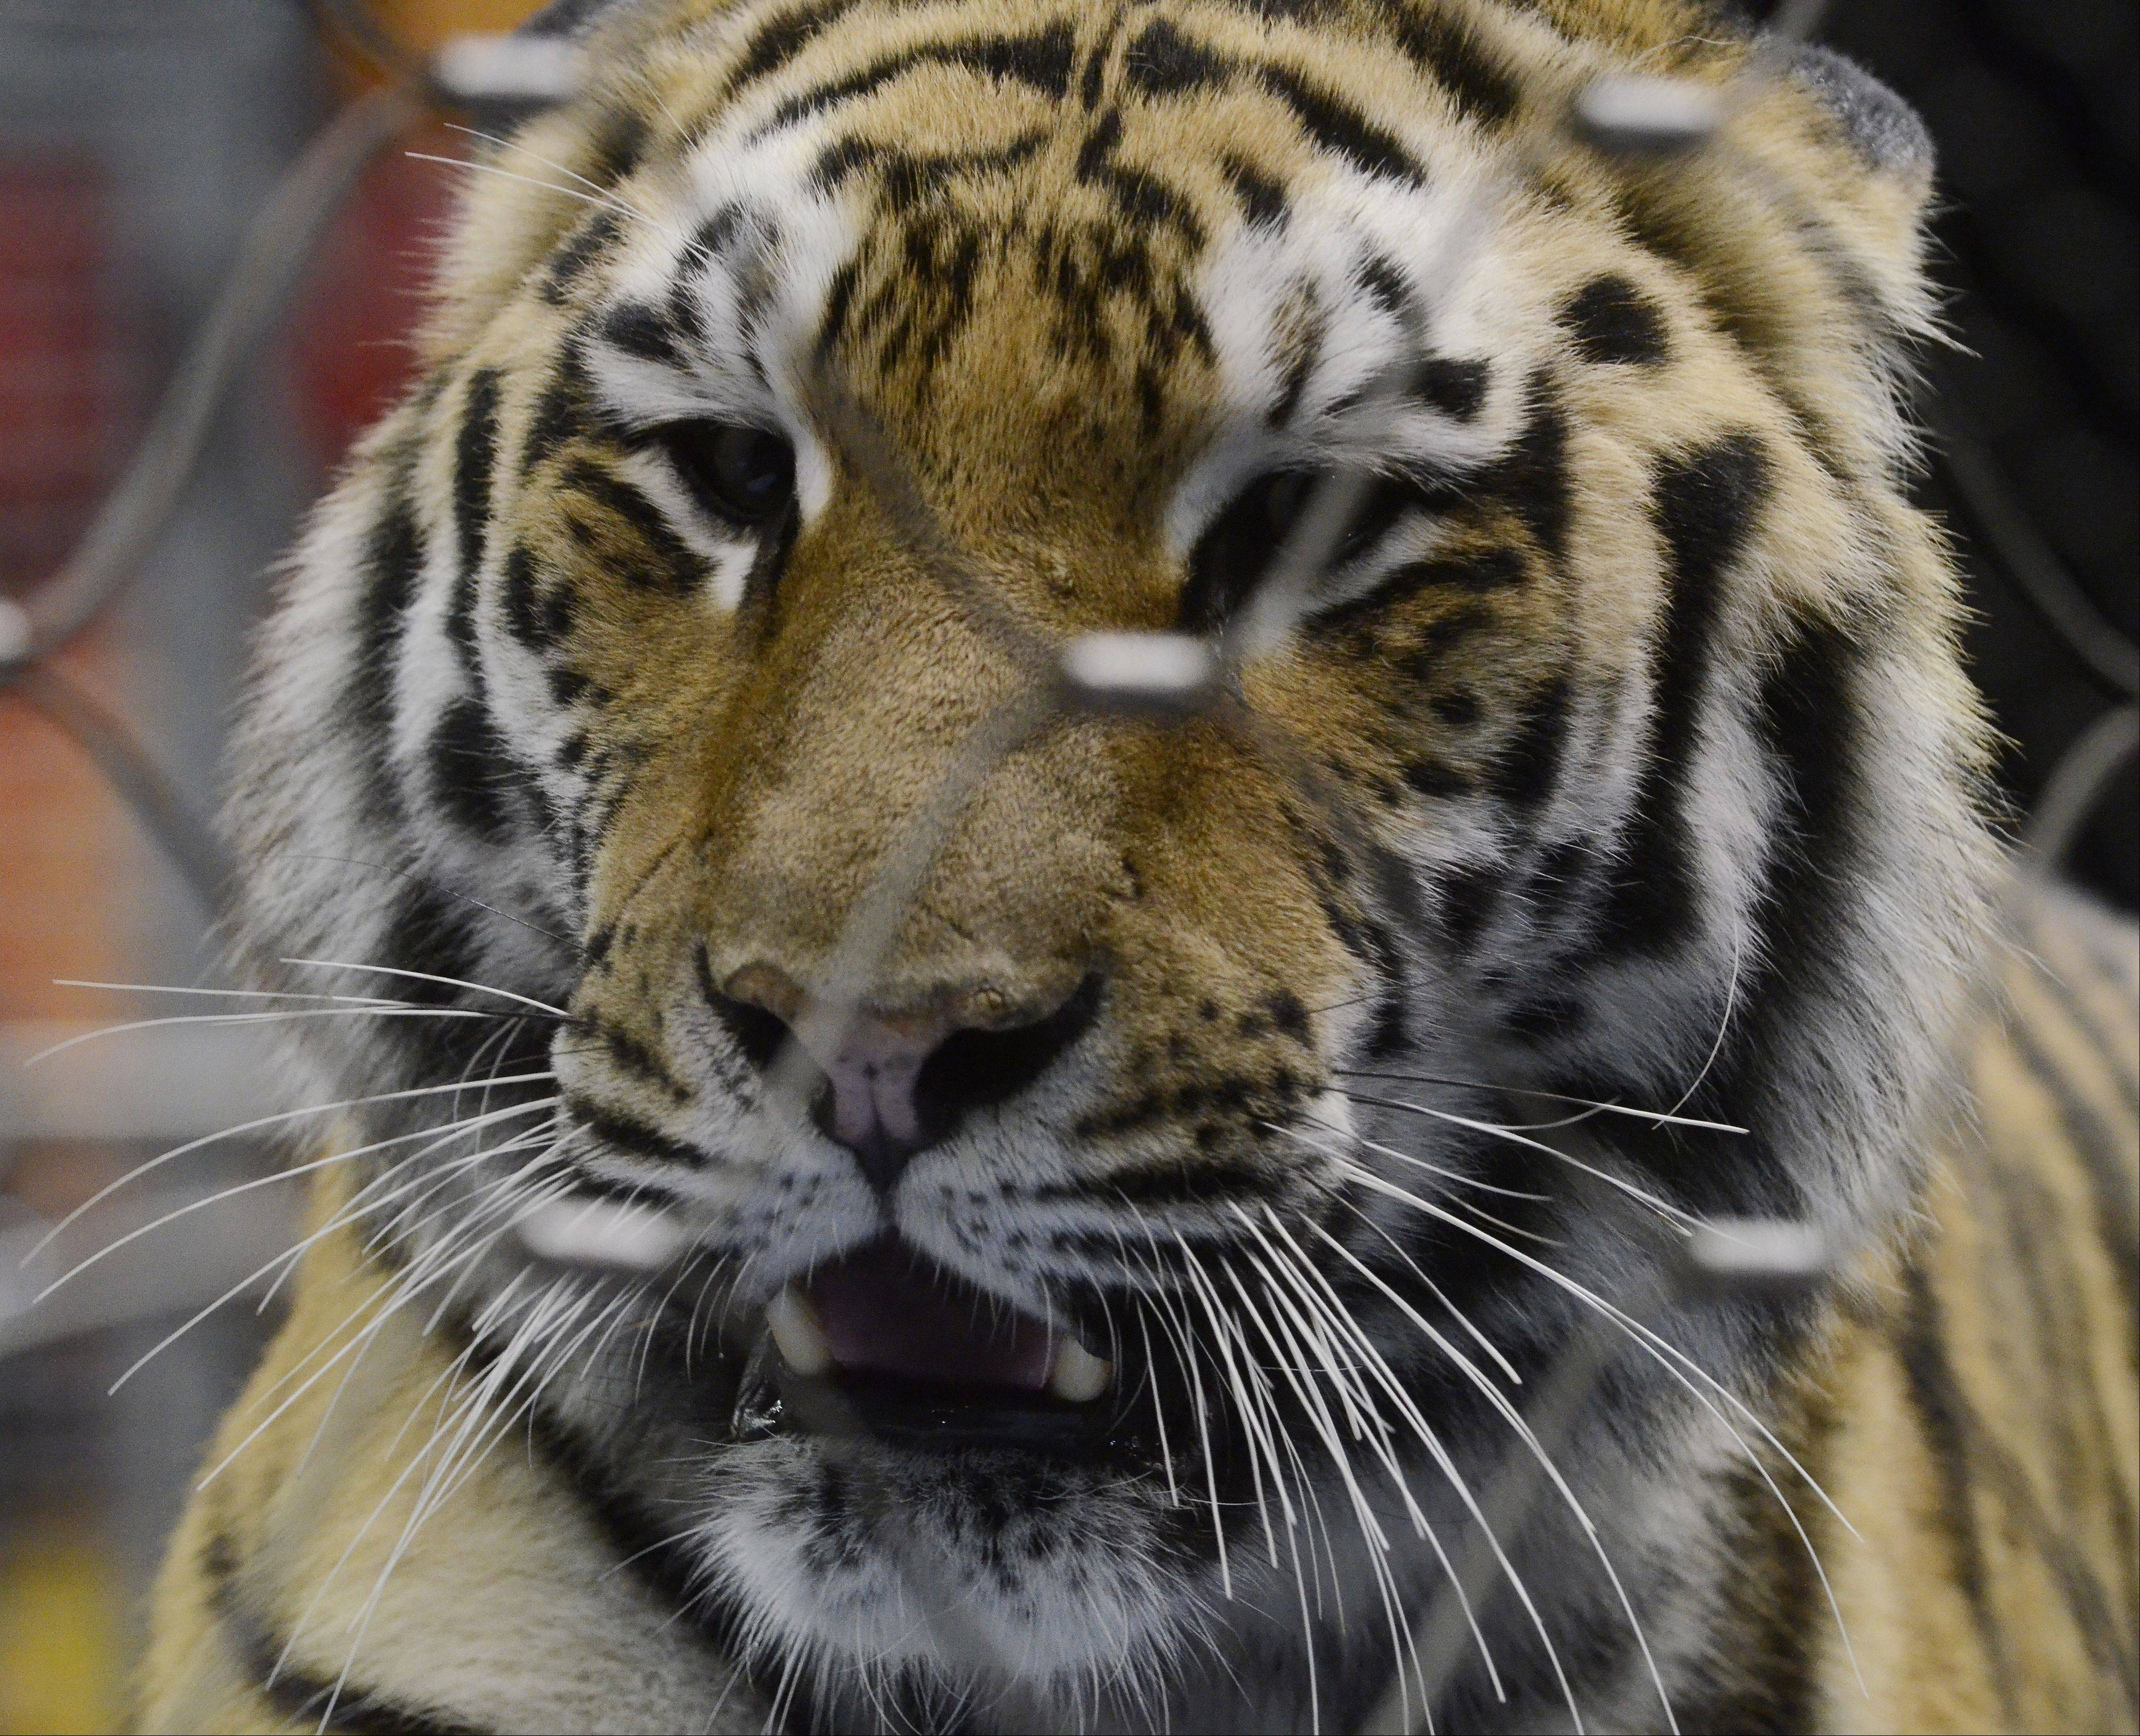 A Bengal tiger peers out into the audience during its rehearsal Friday in Rosemont.